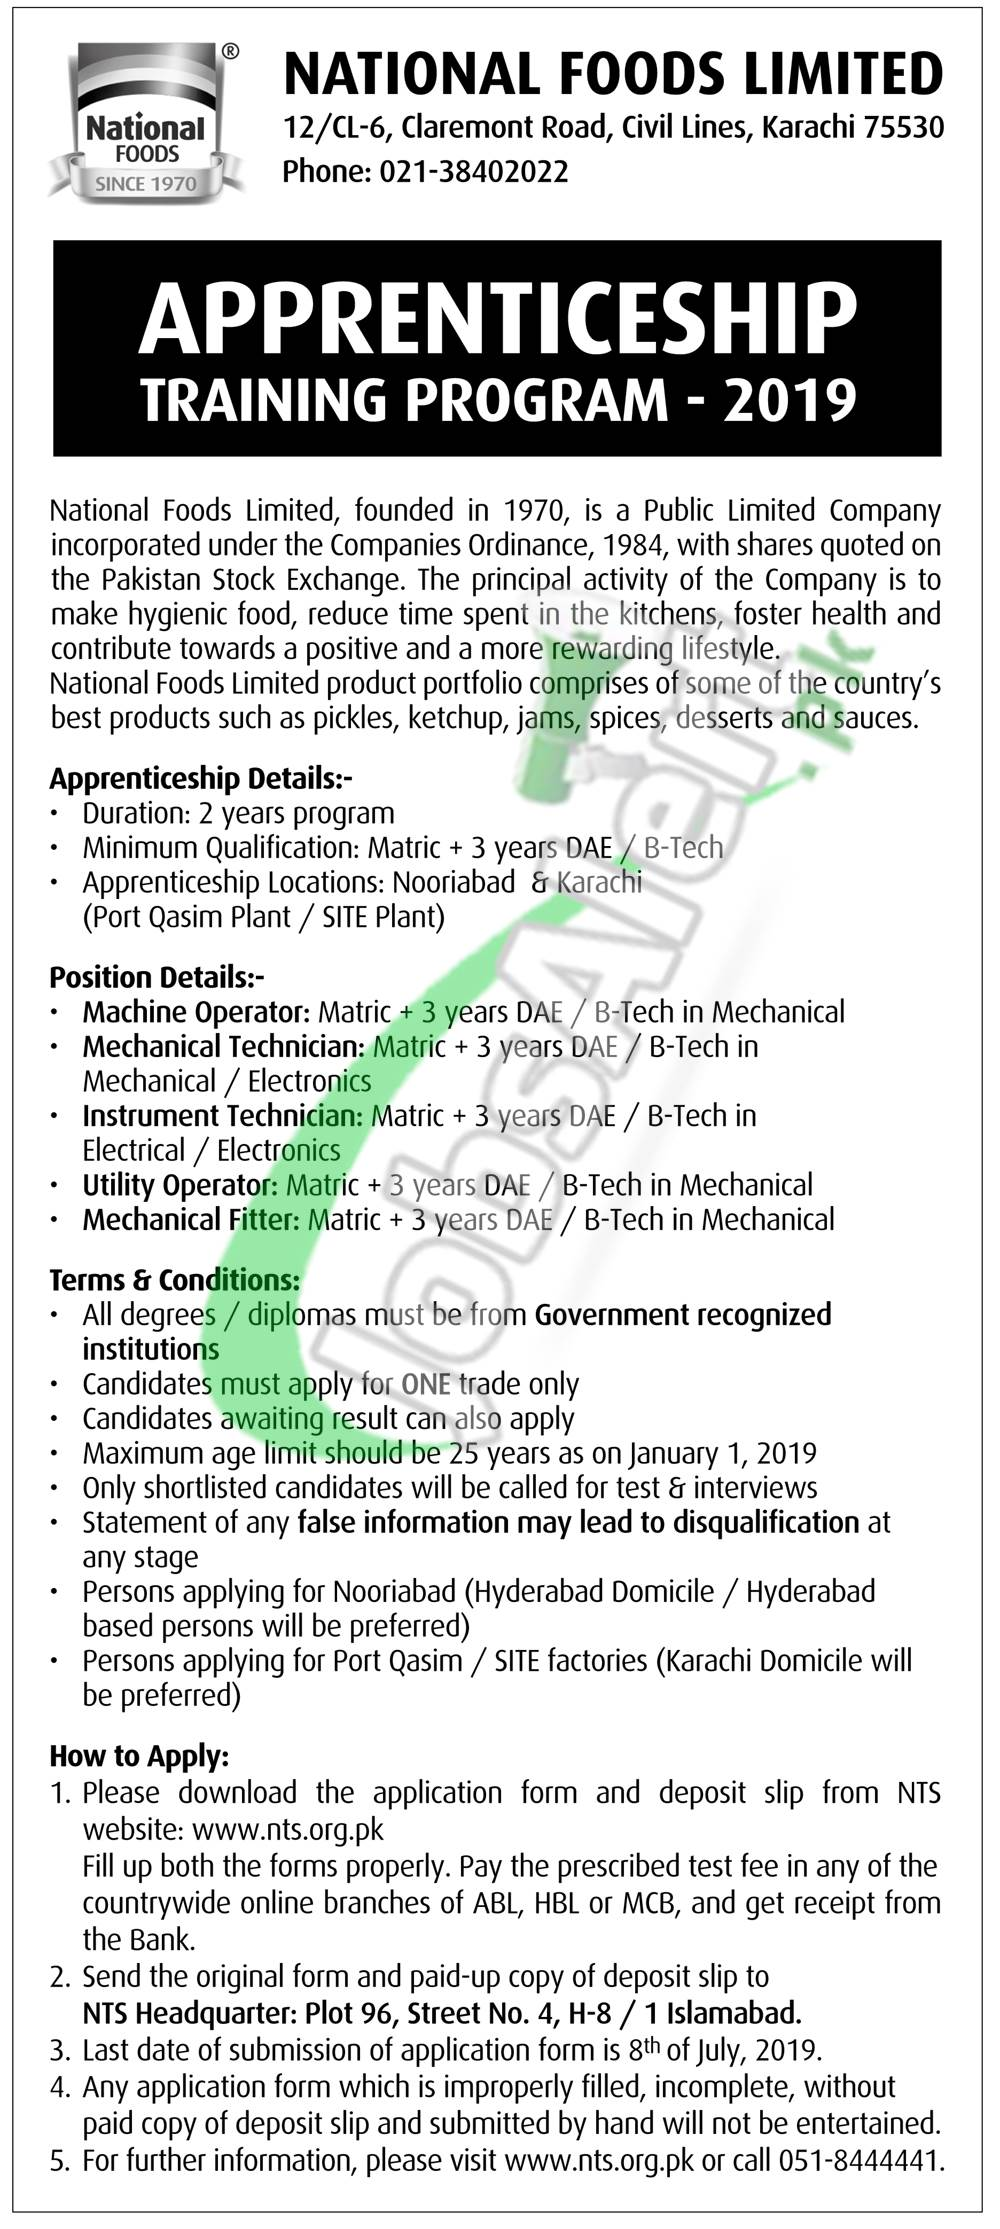 National Food Limited Apprenticeship